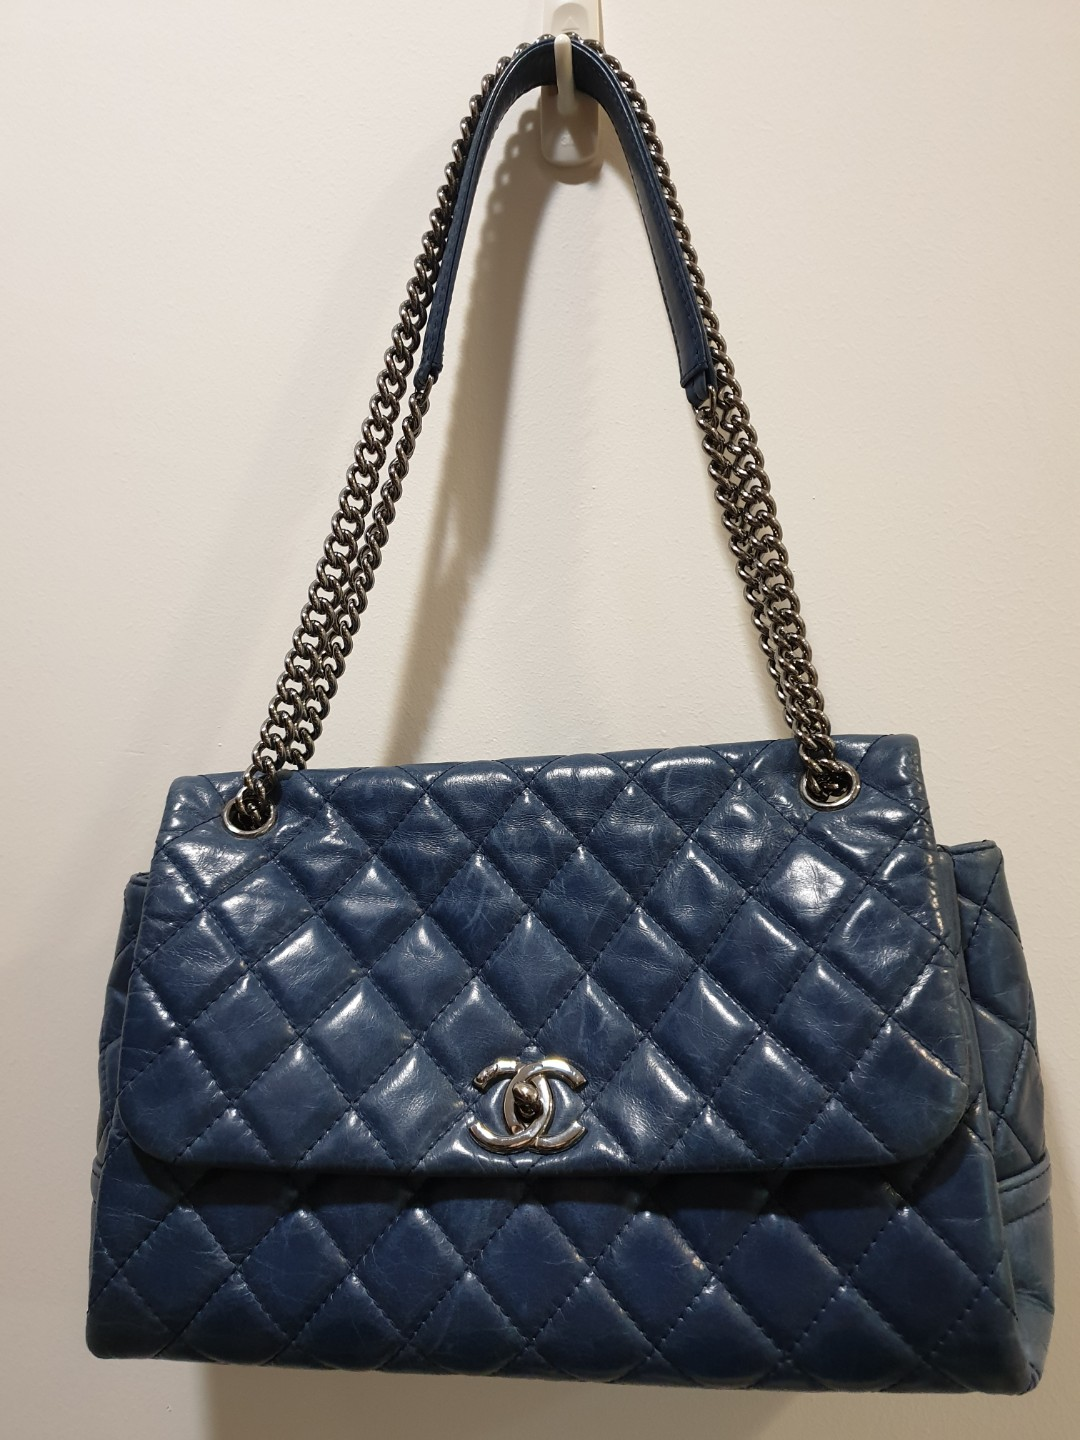 42615d8c745c Authentic Chanel Flap Bag, Luxury, Bags & Wallets, Handbags on Carousell